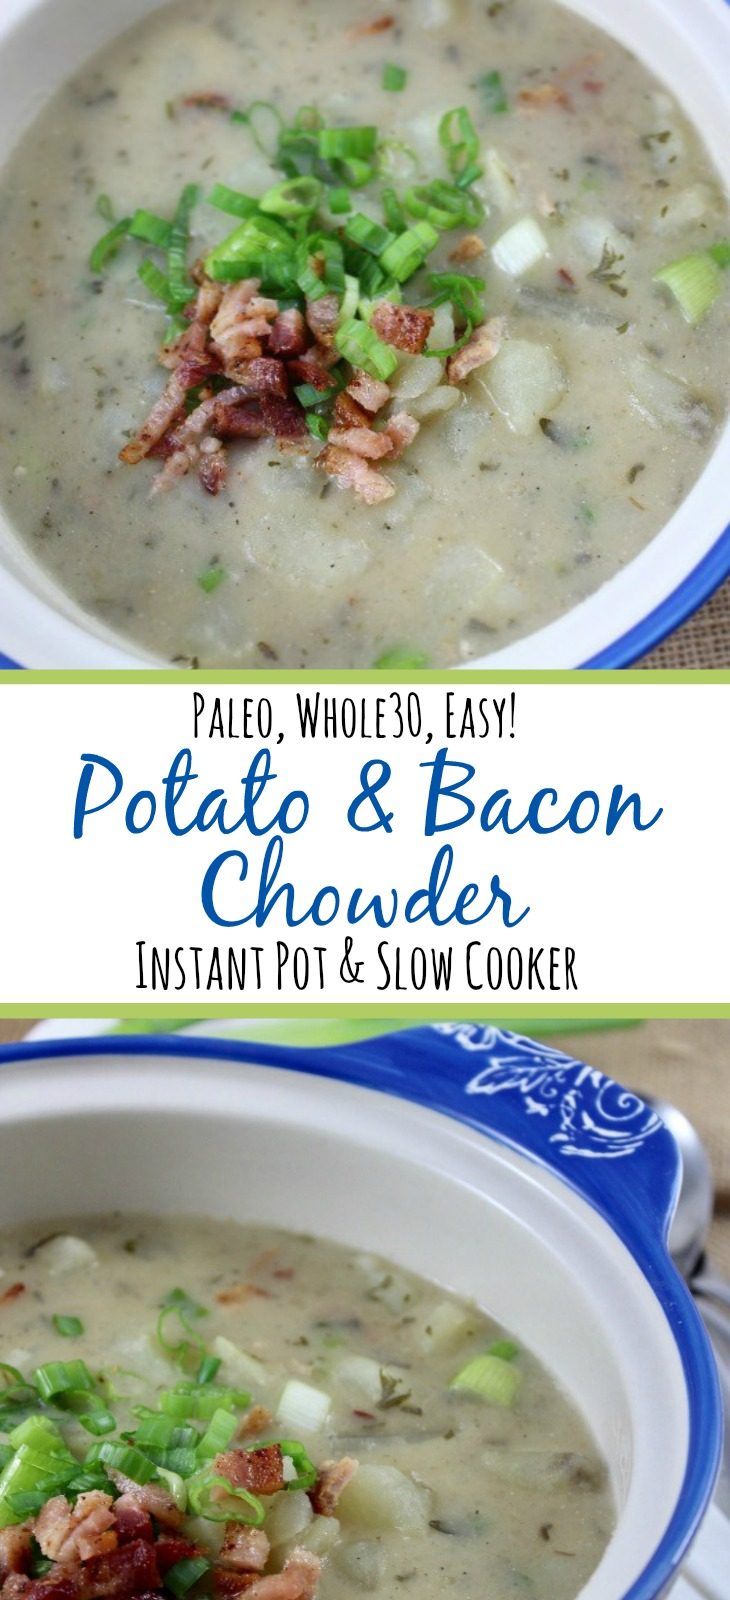 Creamy but dairy free, this Paleo potato and bacon chowder is an easy instant pot recipe that can also be made in the slow cooker! It's Whole30, full of flavor and a family friendly recipe everyone will love! They won't even know it's made from all real food! #paleosoup #potatosoup #whole30soup #whole30instantpot